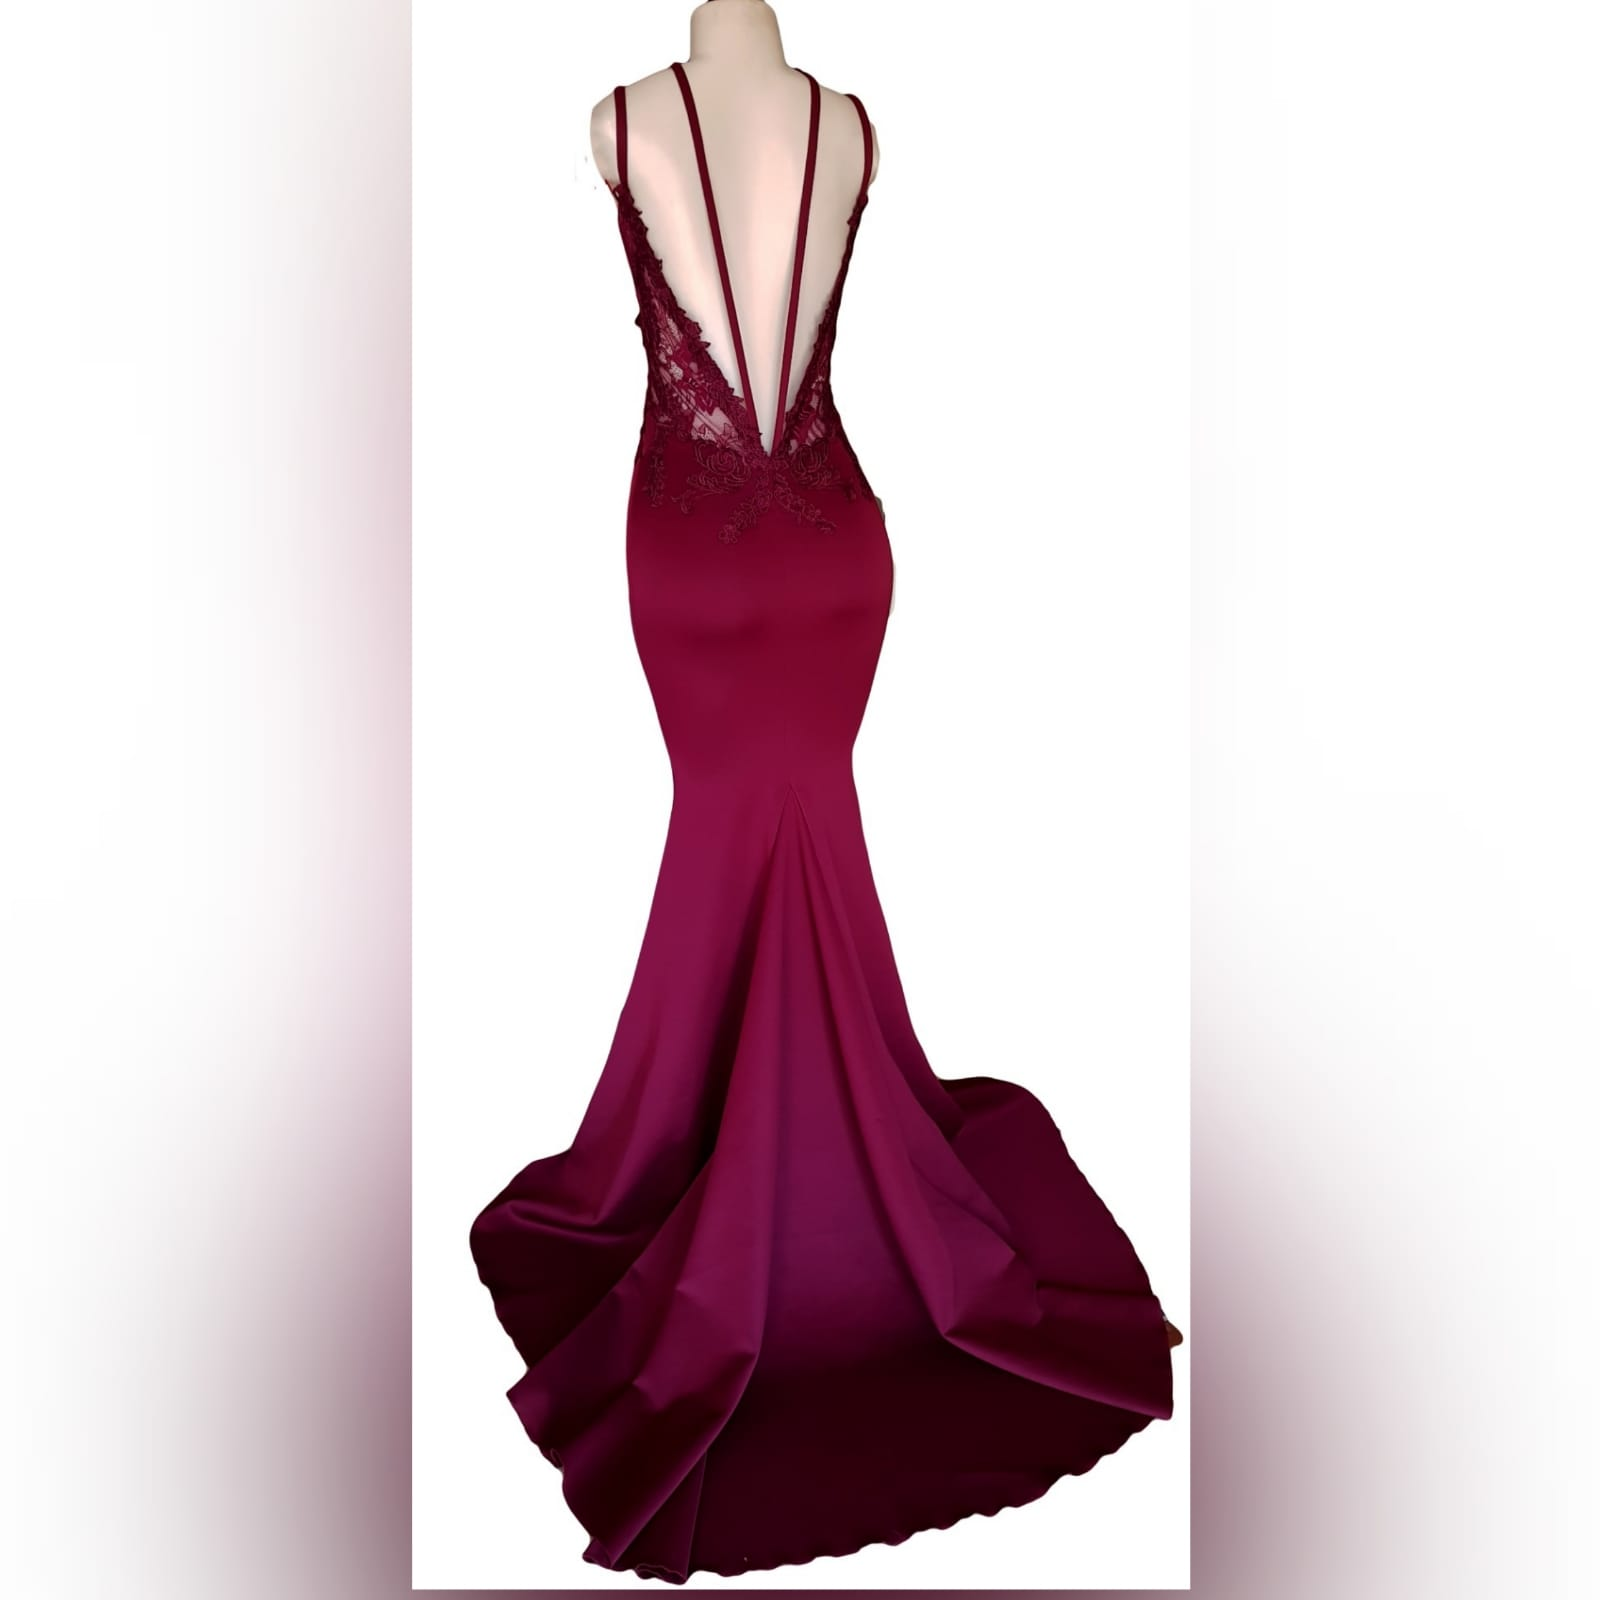 Burgundy soft mermaid sexy elegant prom dress 4 burgundy soft mermaid sexy elegant prom dress. With an illusion lace bodice with deep v neckline, low open v back with strap detail, with a train